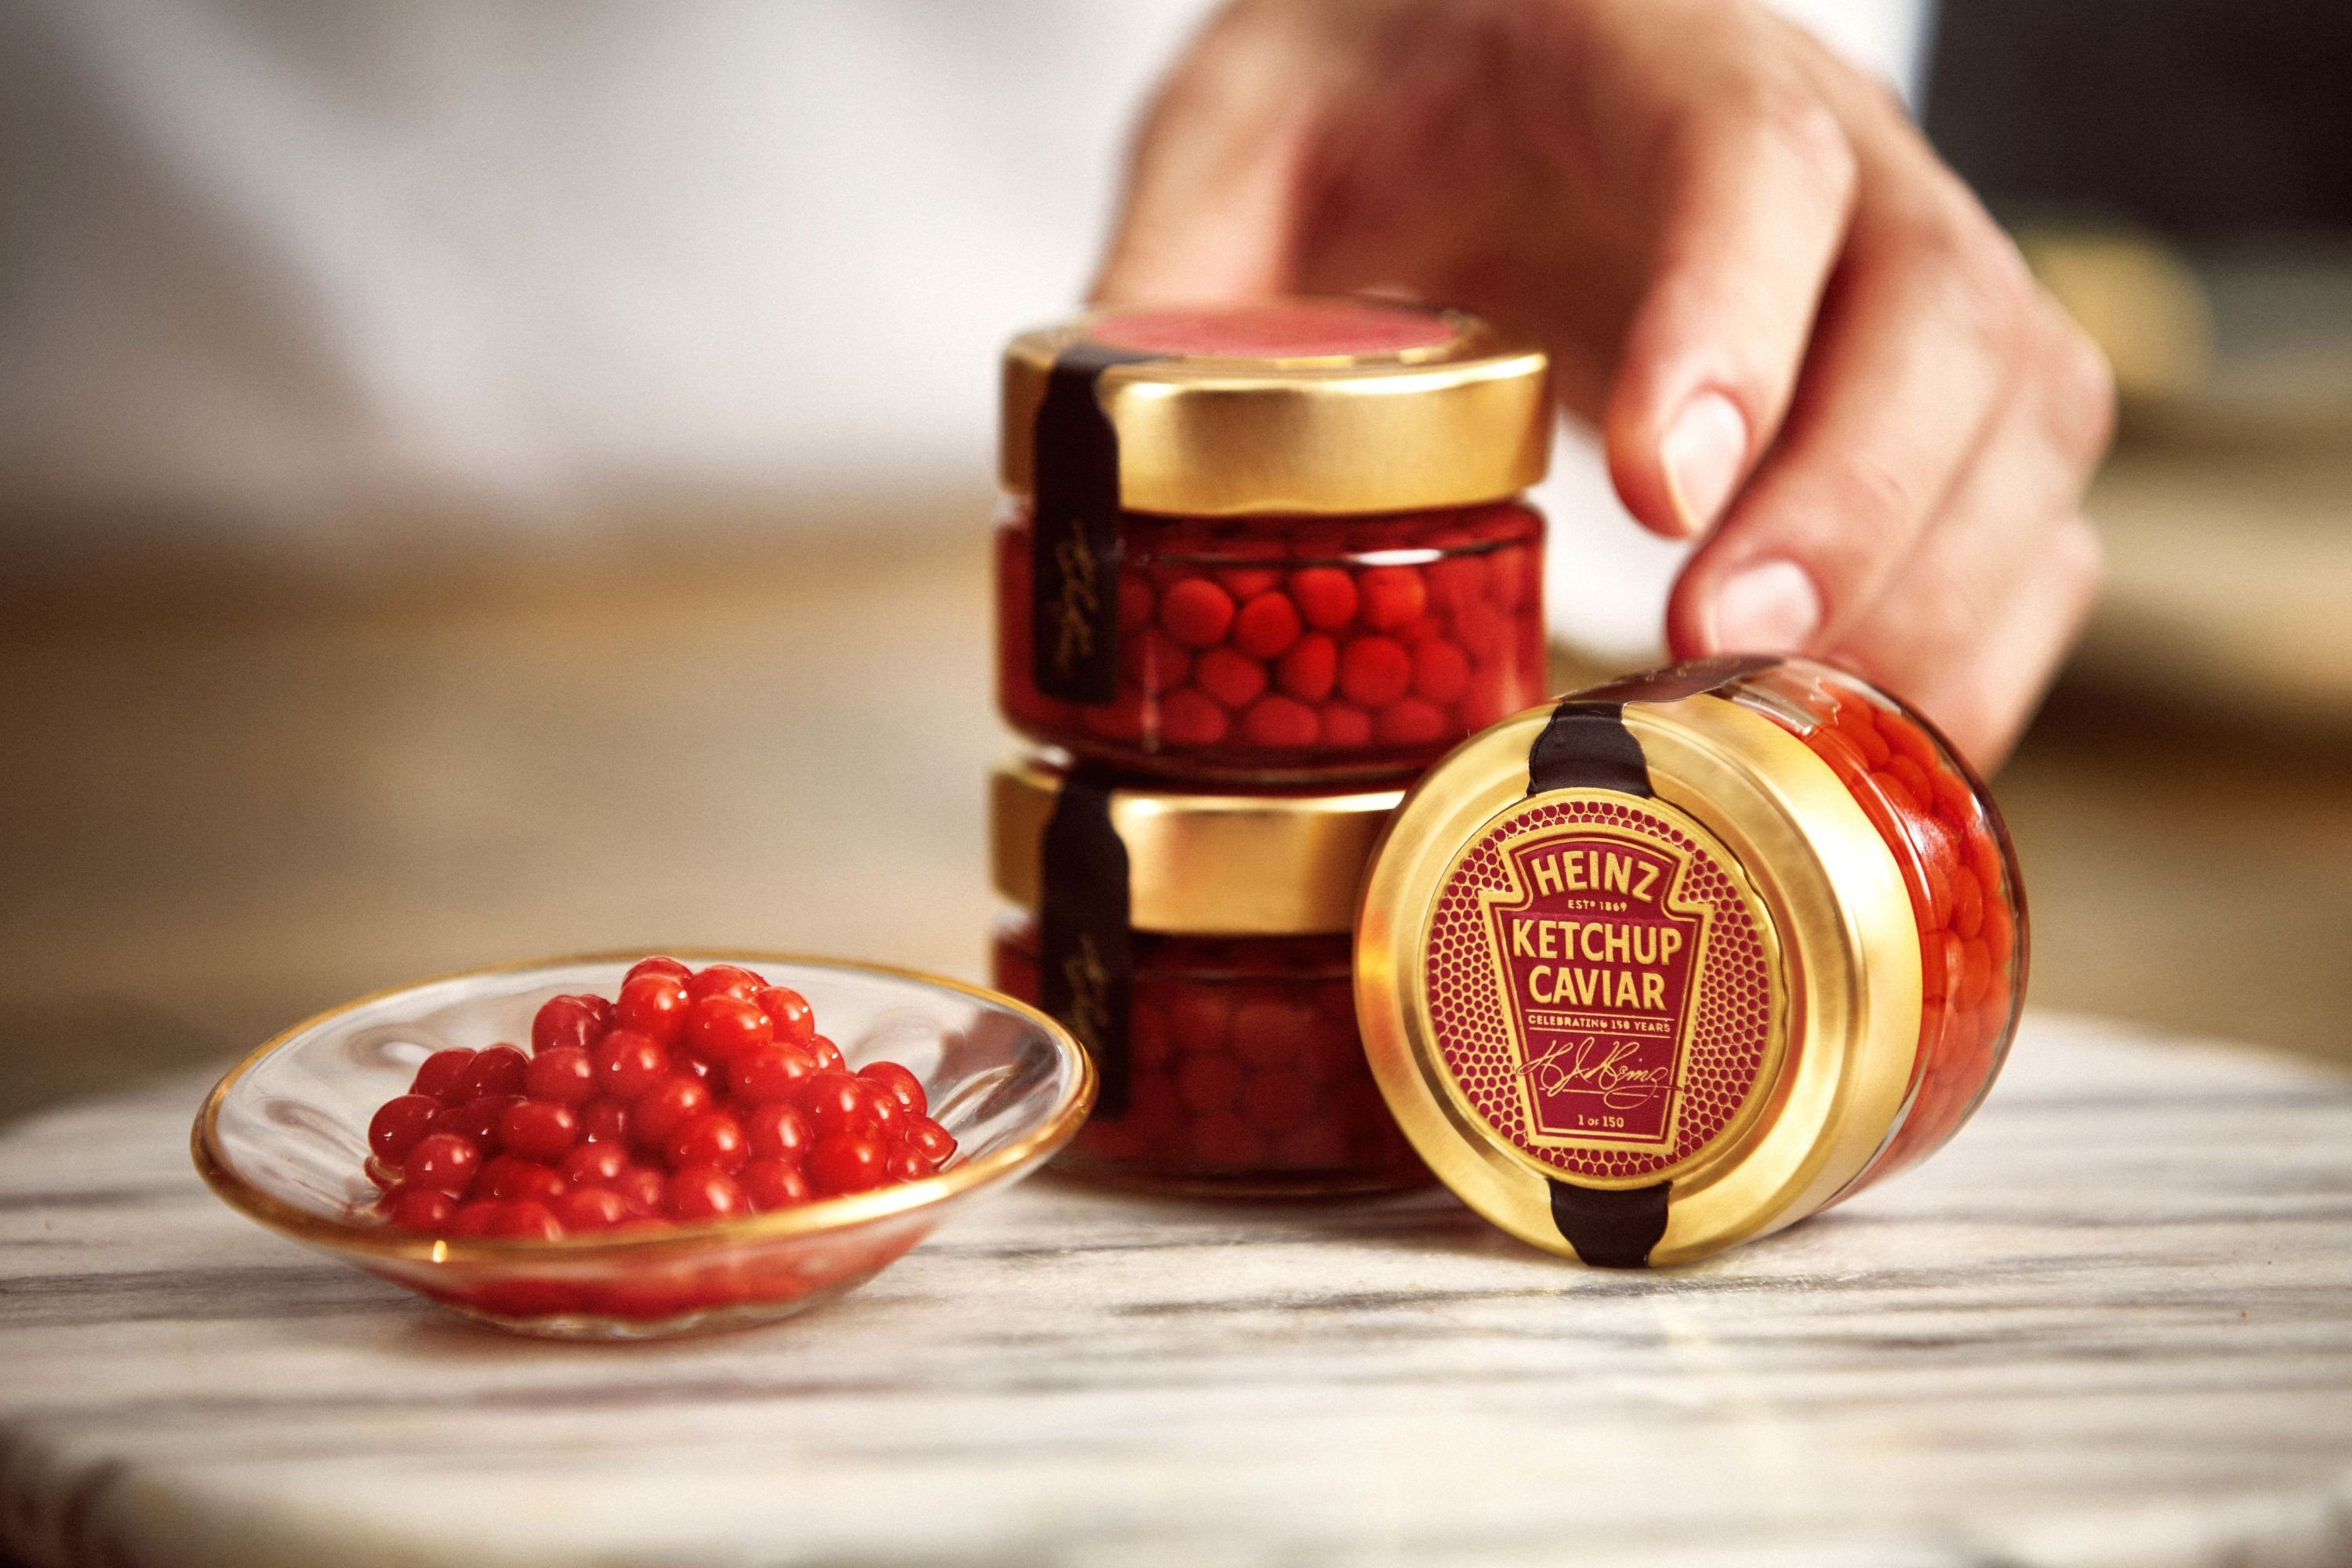 HEINZ Ketchup Caviar will become the ketchup fan's new obsession